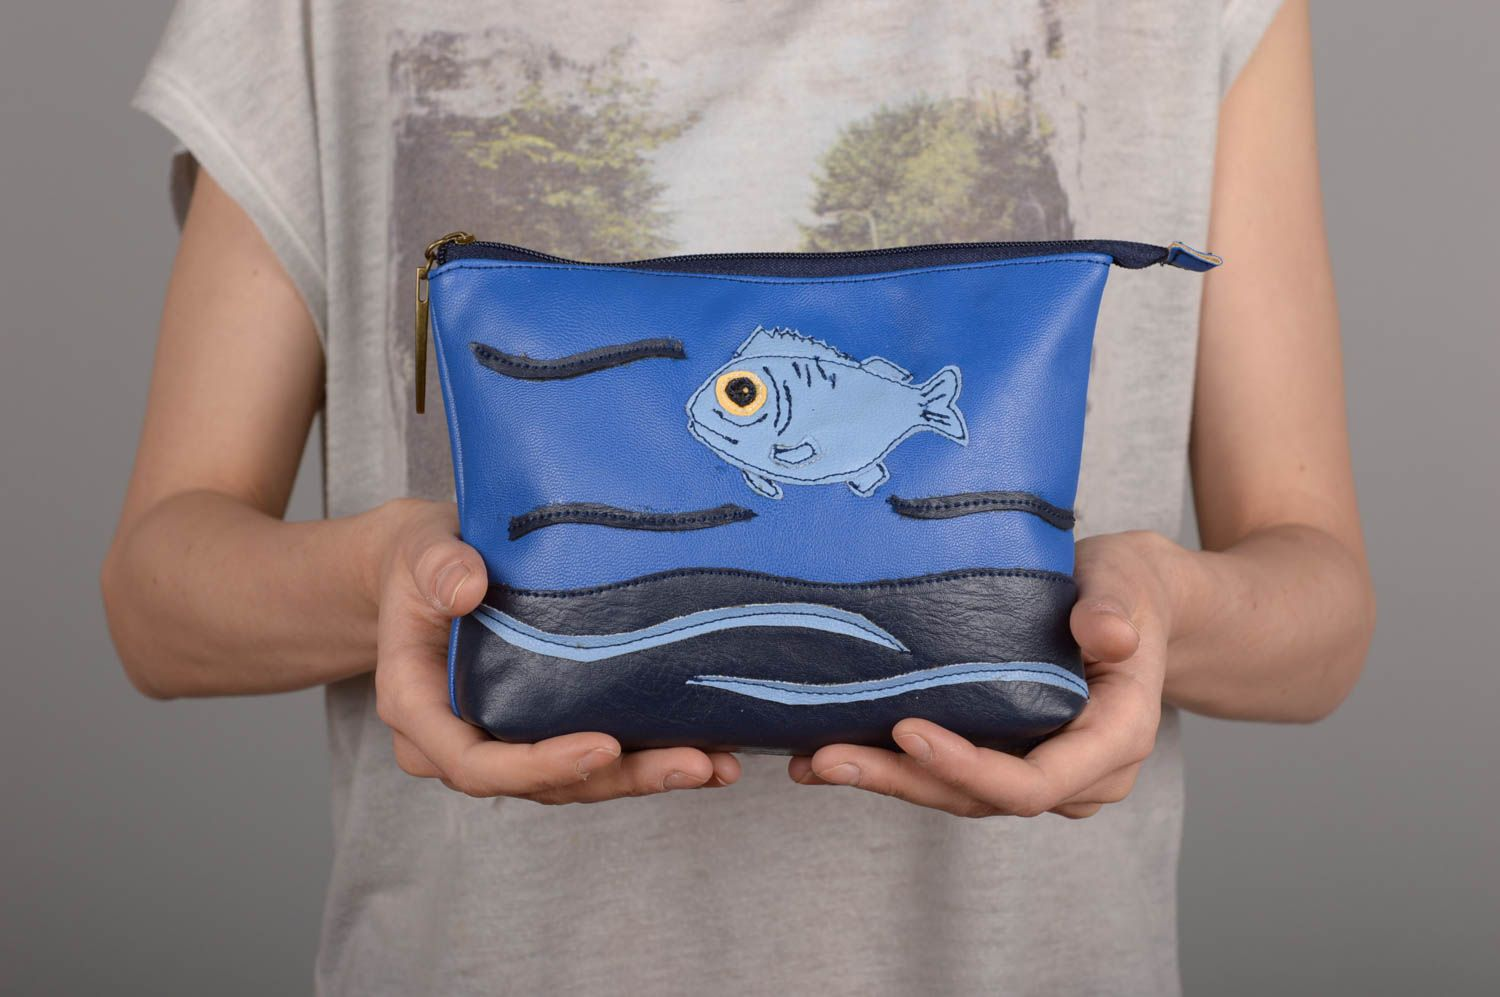 Handmade clutch bag women blue clutch leatherette bag unusual female accessory photo 5